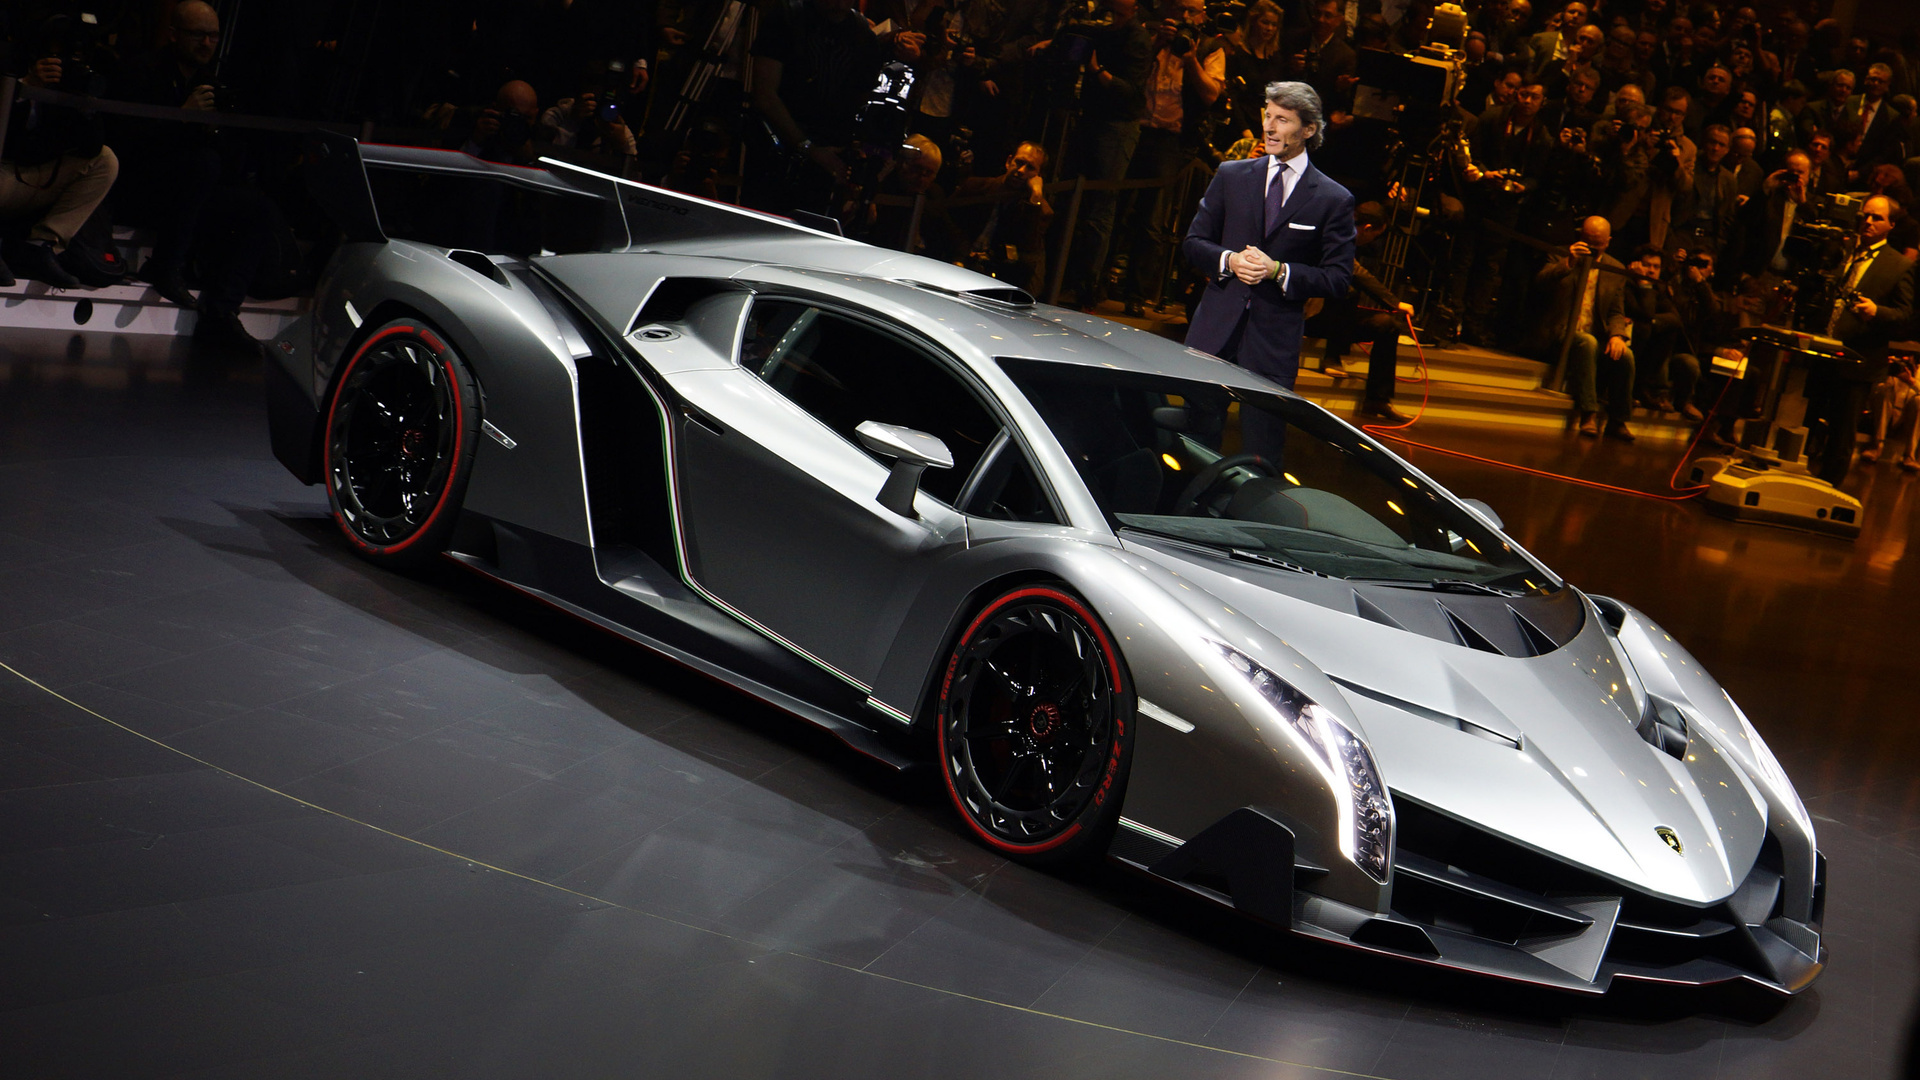 lamborghini veneno wallpapers images photos pictures backgrounds. Black Bedroom Furniture Sets. Home Design Ideas